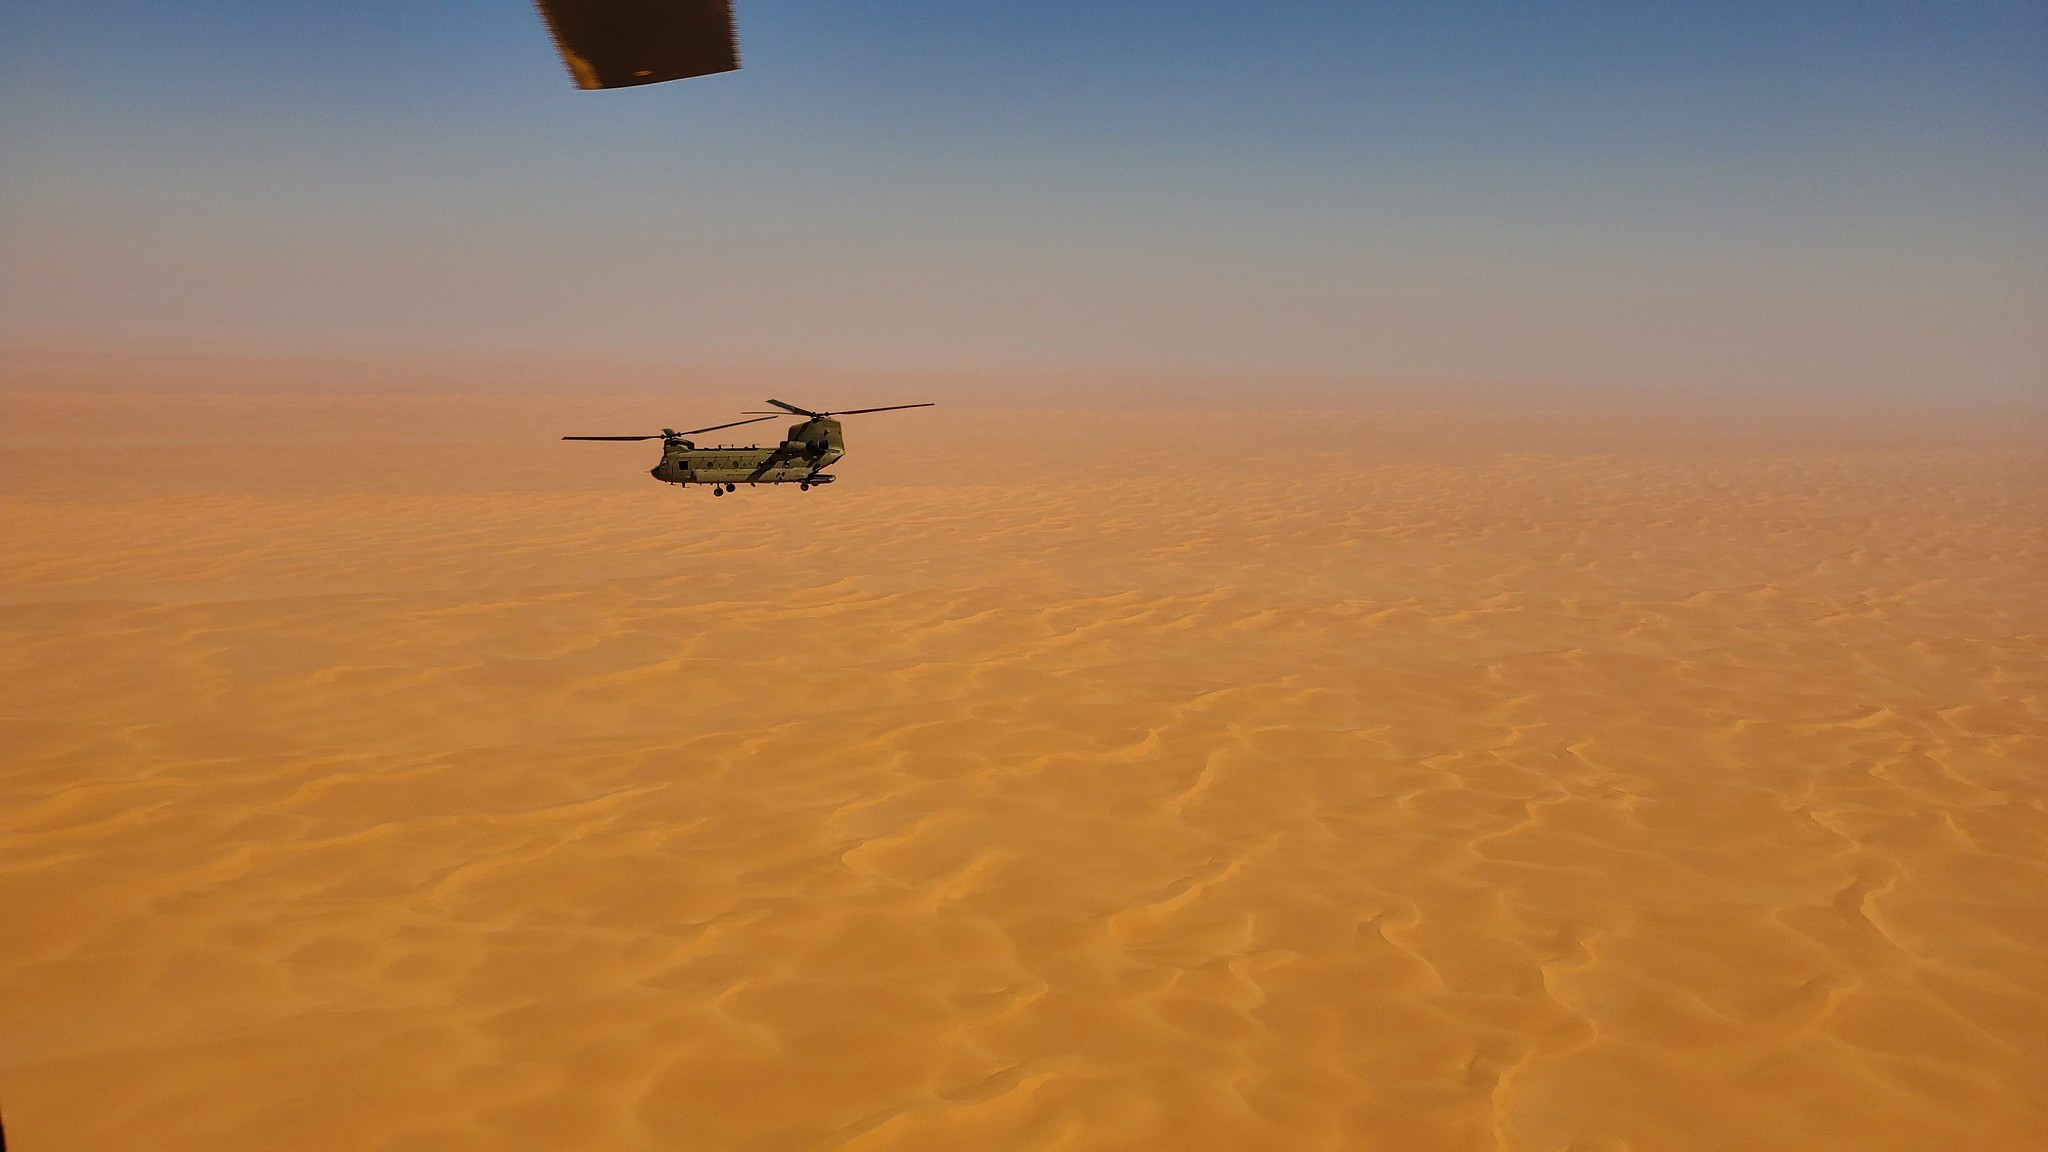 A CH-47 Chinook helicopter, operated by soldiers with Bravo Company, 3-238th General Support Aviation Battalion, 28th Expeditionary Combat Aviation Brigade, flies over a desert on Oct. 18, 2020, in the 28th ECAB's area of operations in the Middle East. (Spc. Jacob Robinson/Army)